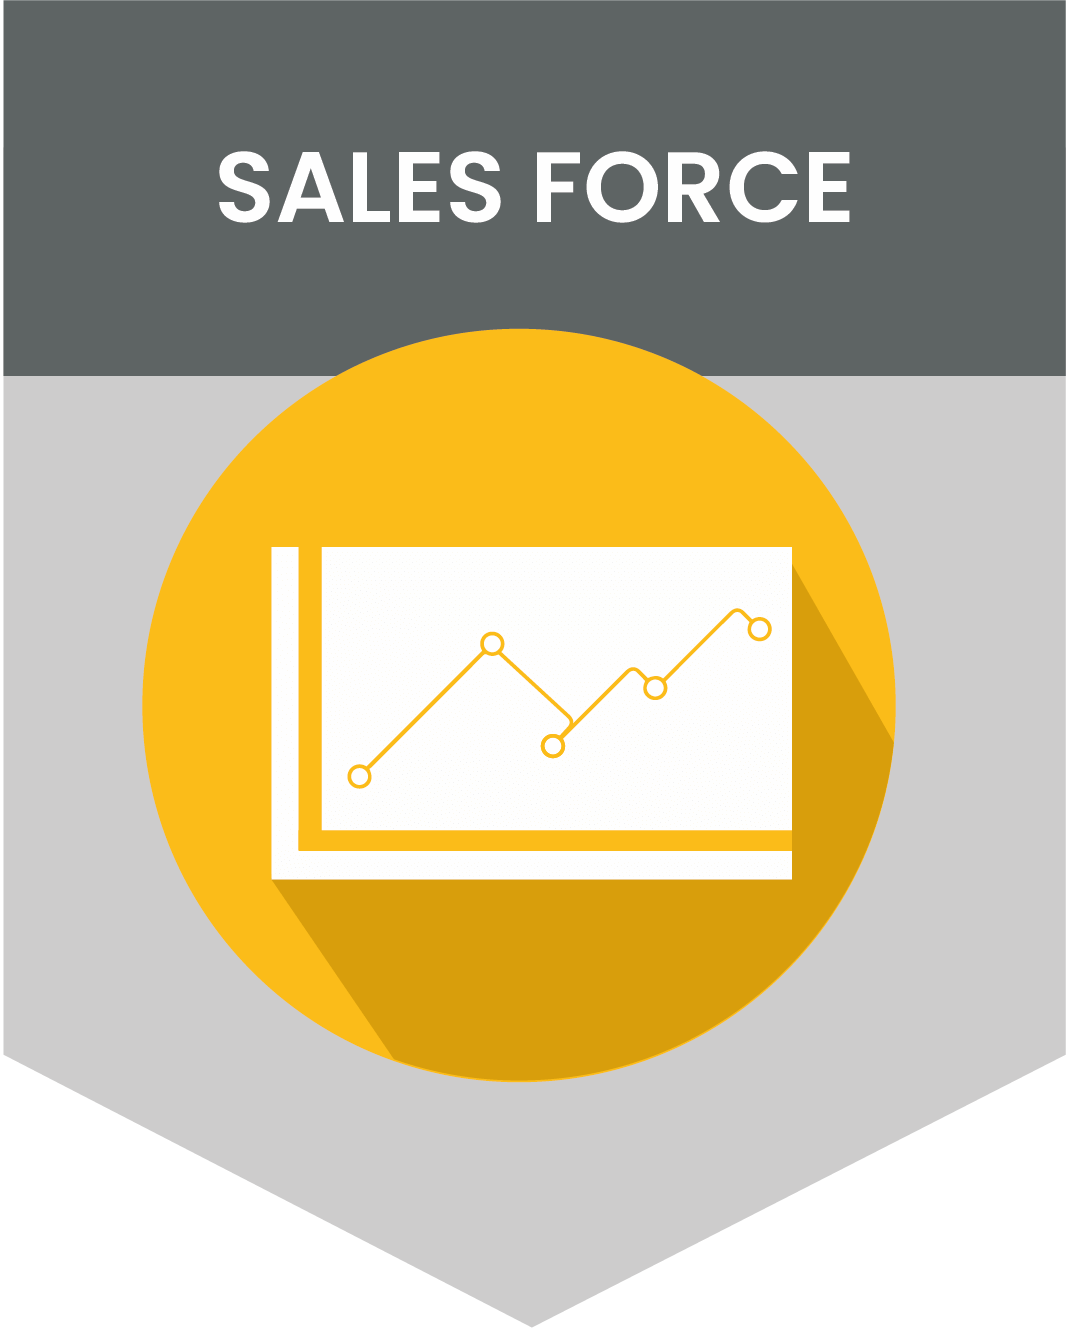 sales force-e-commerce-data impact-client-partner